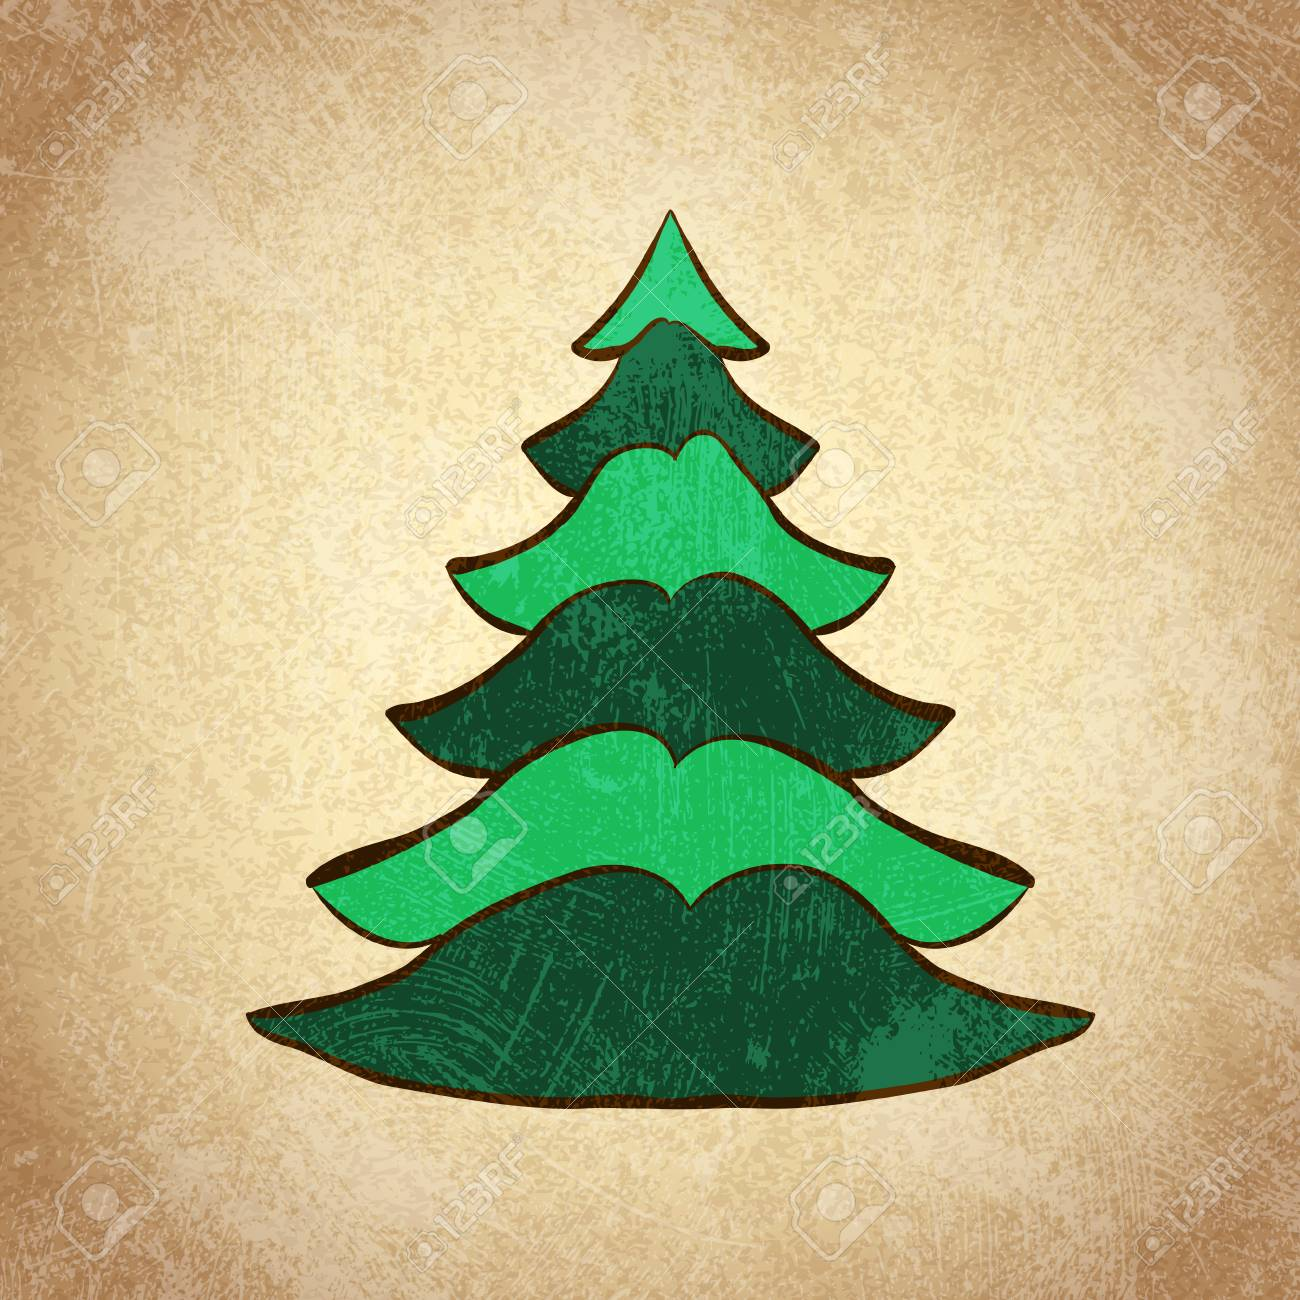 Hand Drawn Christmas Tree Color Sketch On Grunge Vintage Background ...